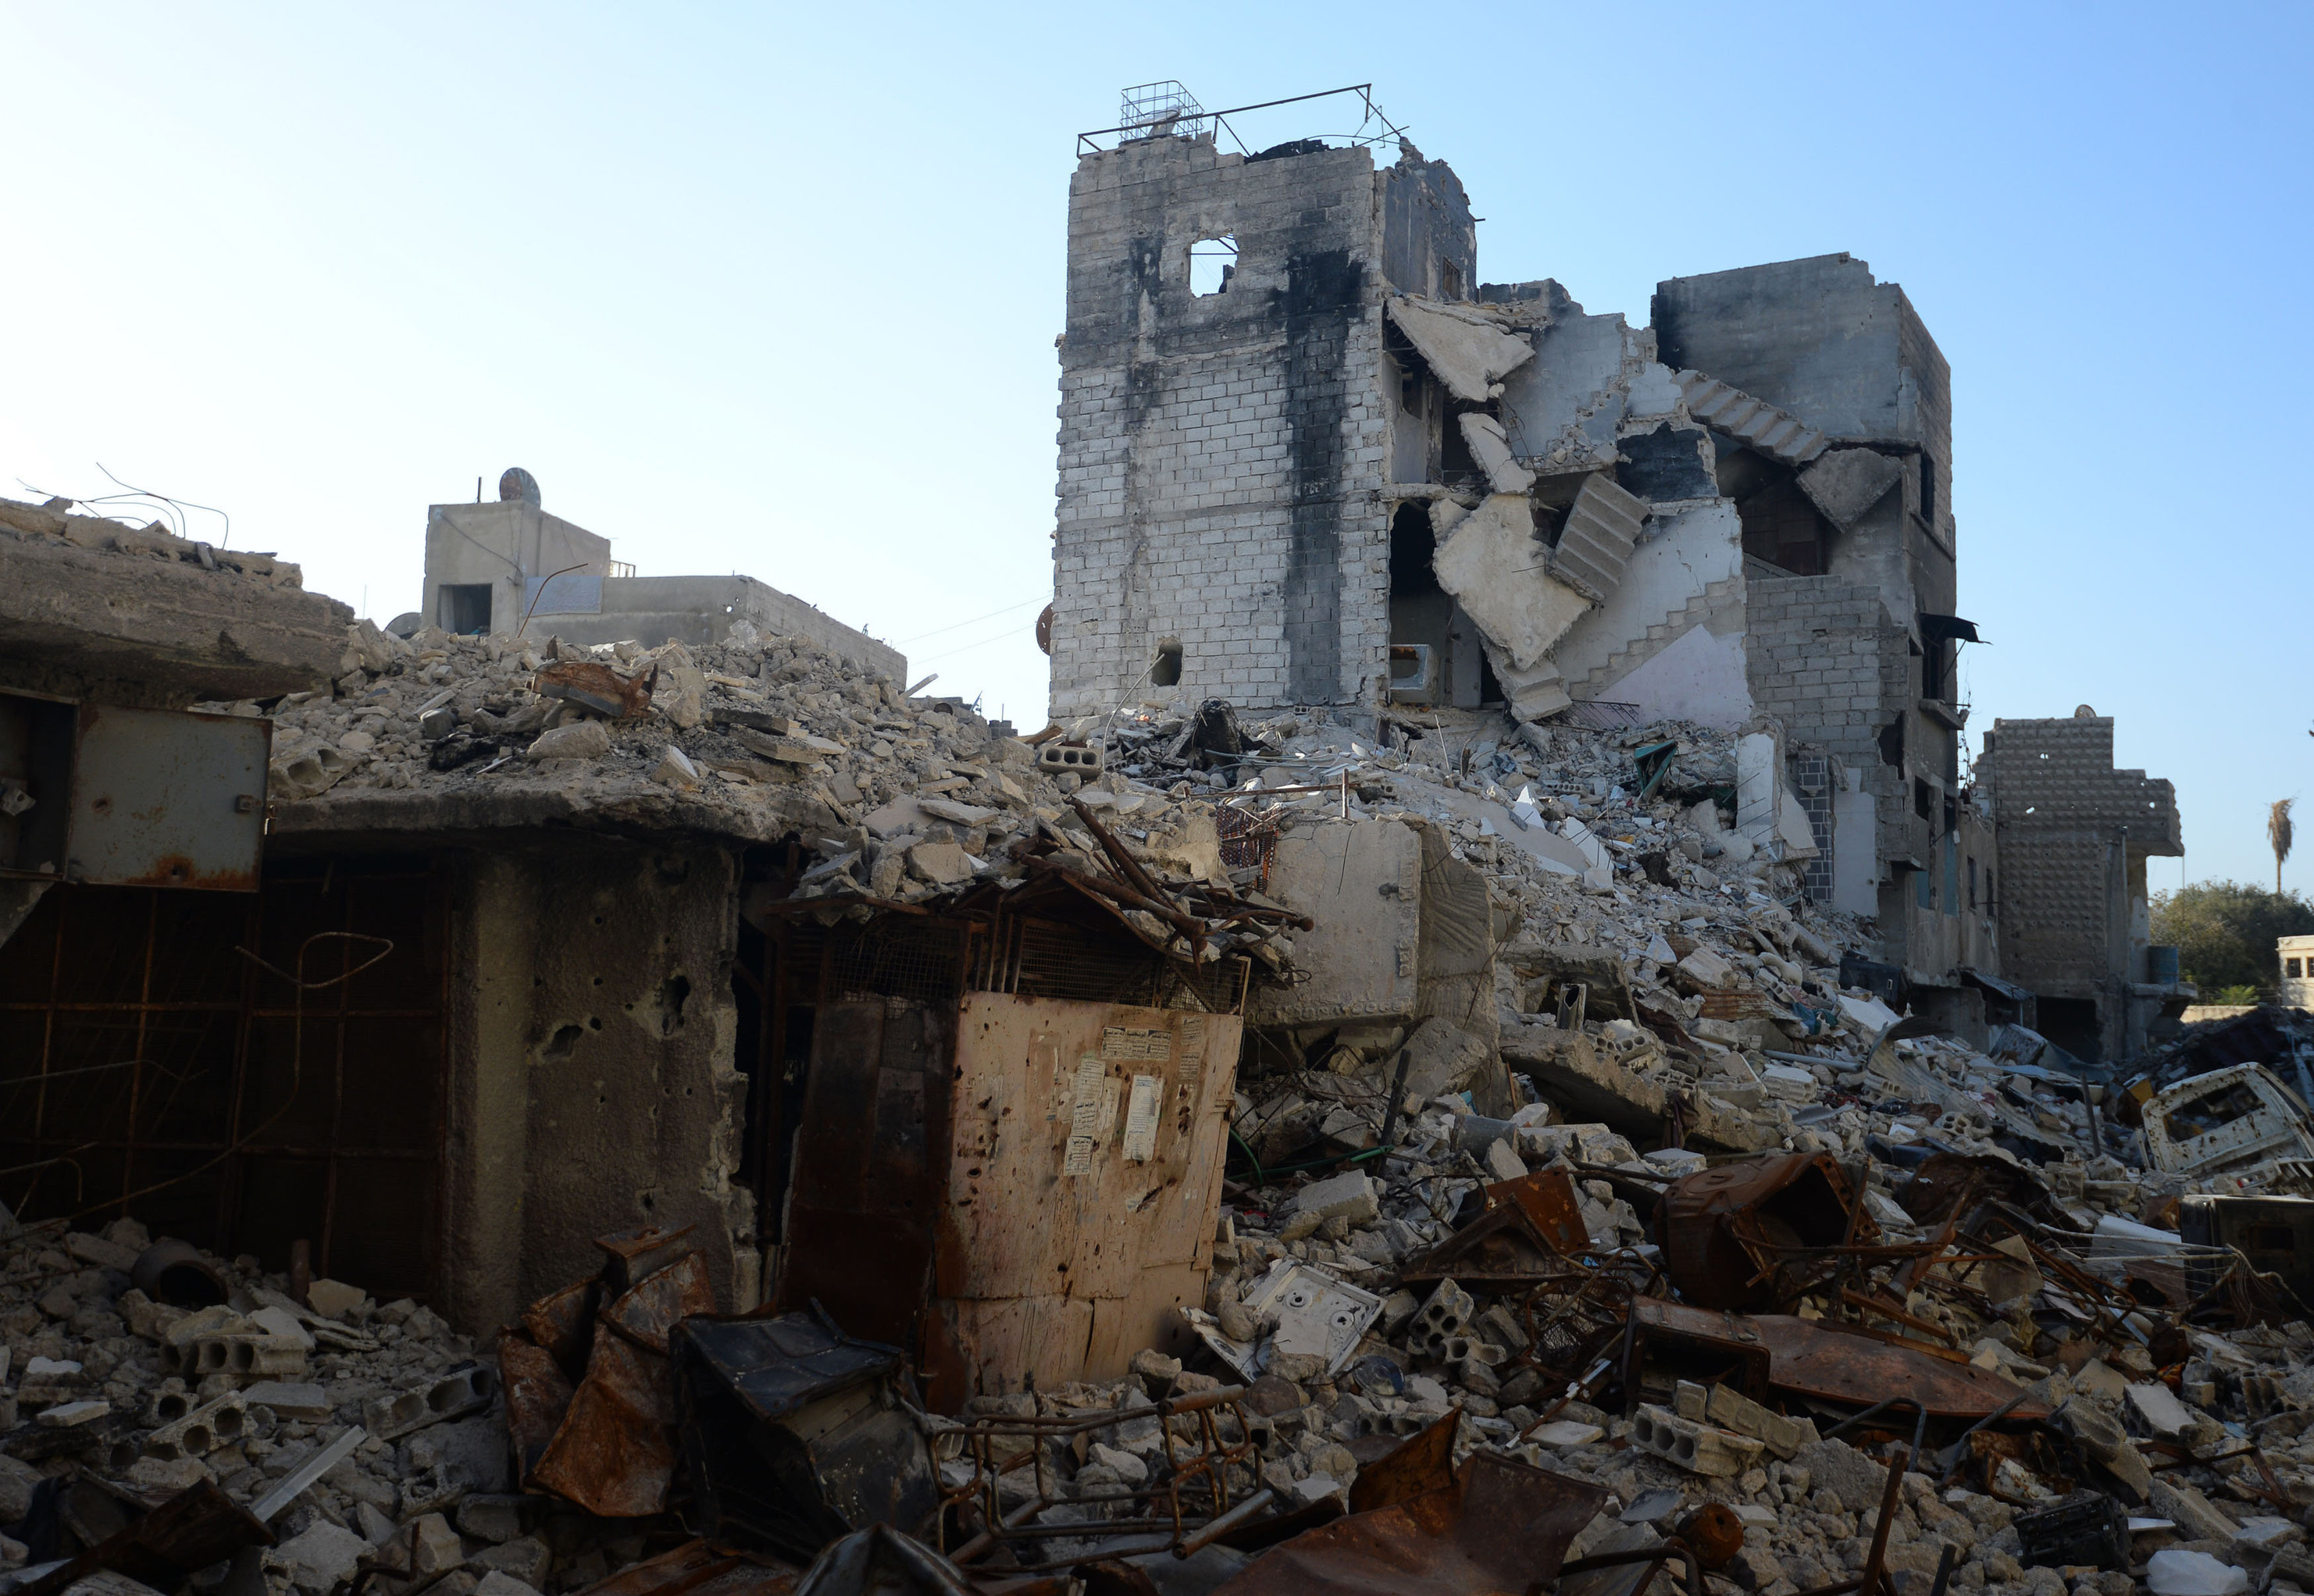 Destroyed buildings in Dahaniya, Damascus.